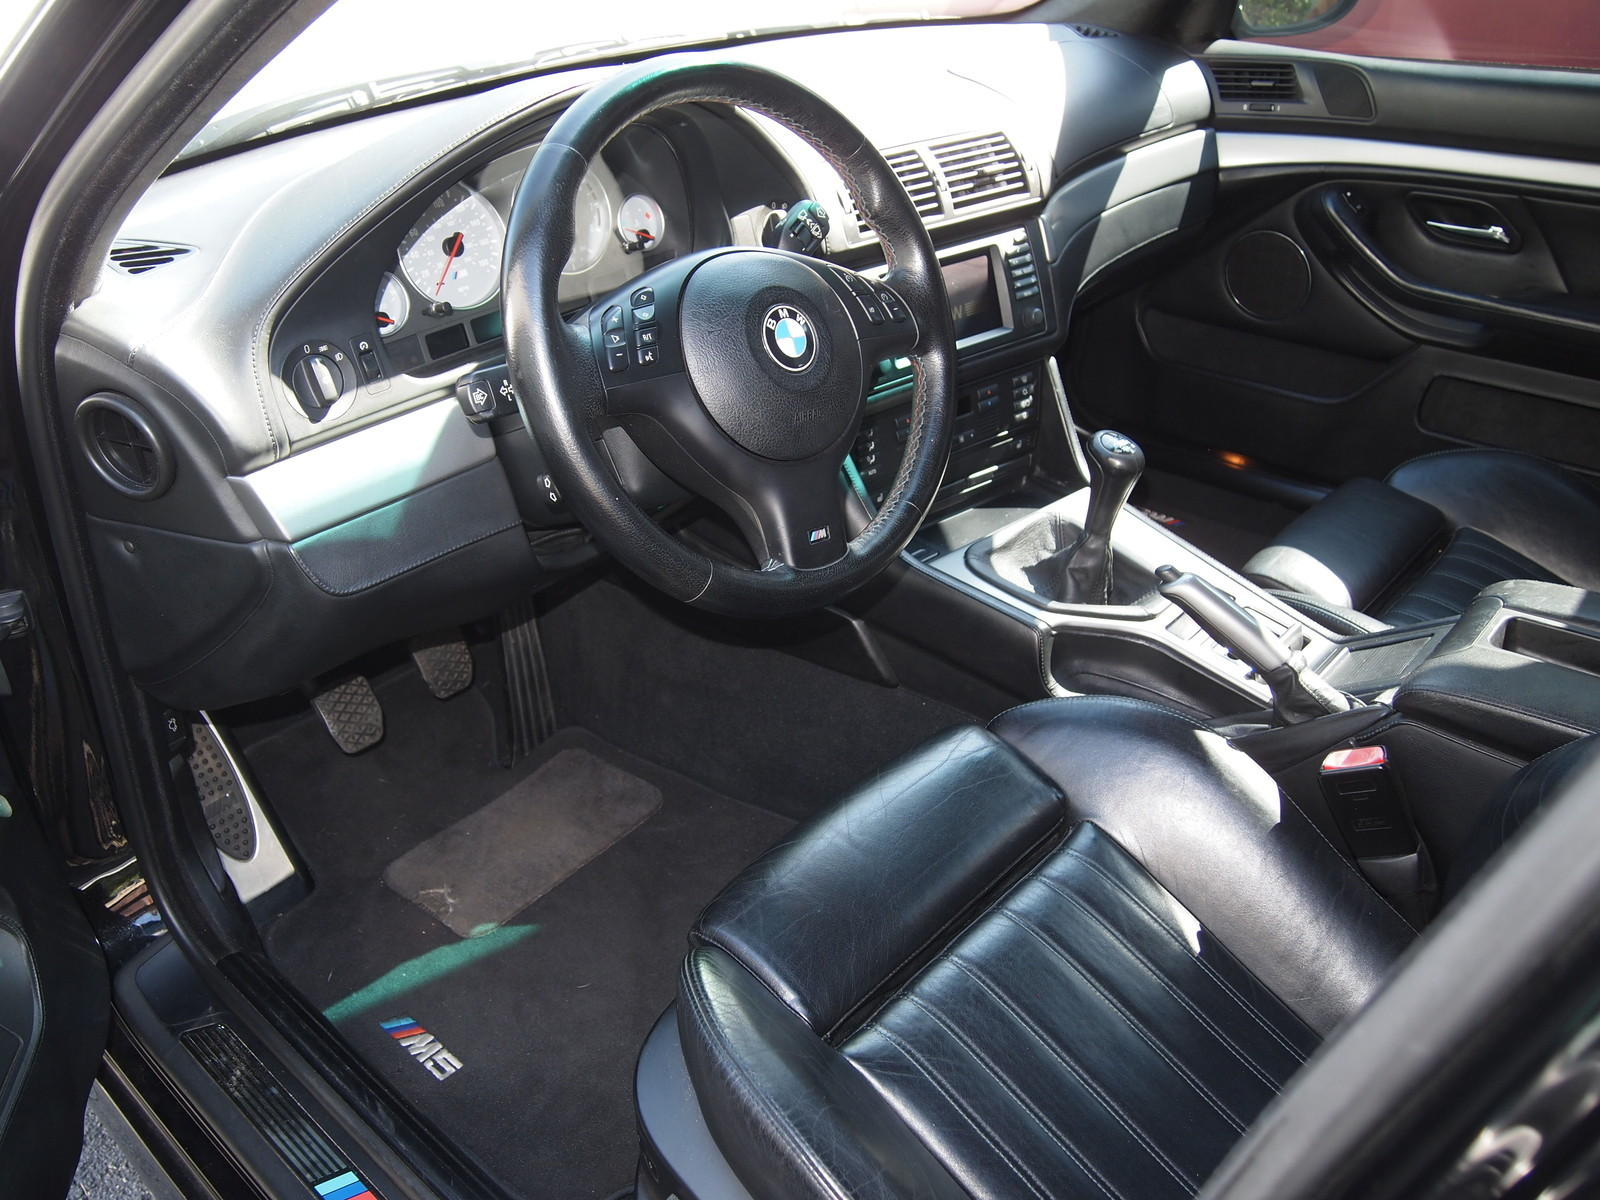 2001 Bmw M5 Dinan S2 German Cars For Sale Blog